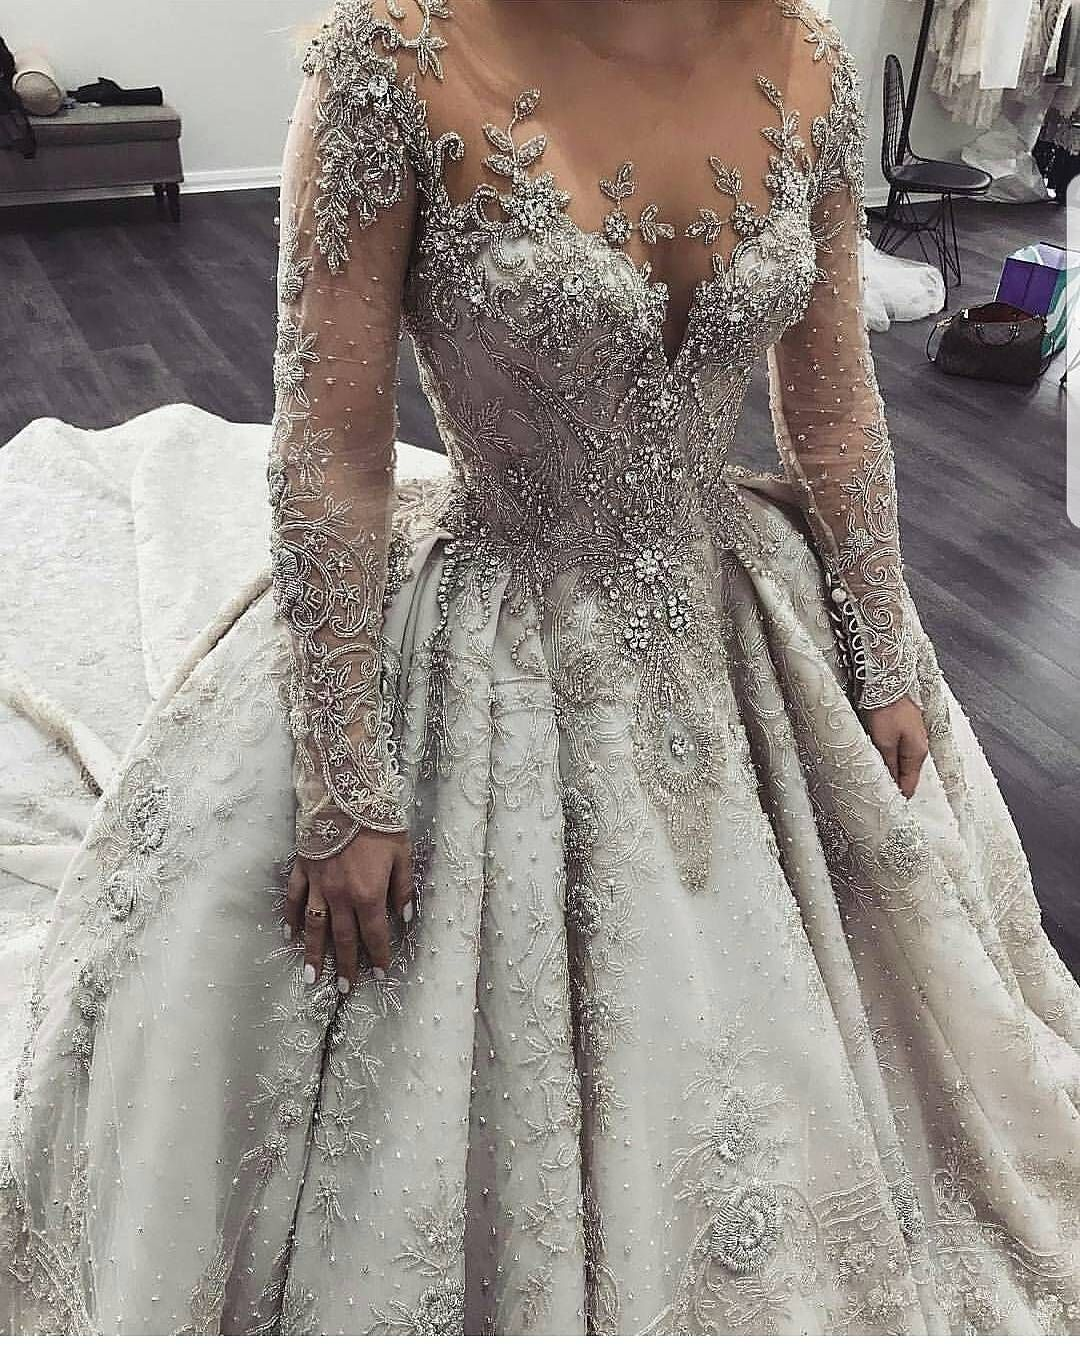 Inspired Wedding Dresses Of Couture Bridal Designs Long Sleeve Ball Gown Wedding Dress Long Sleeve Wedding Dress Lace Long Sleeve Ball Gowns